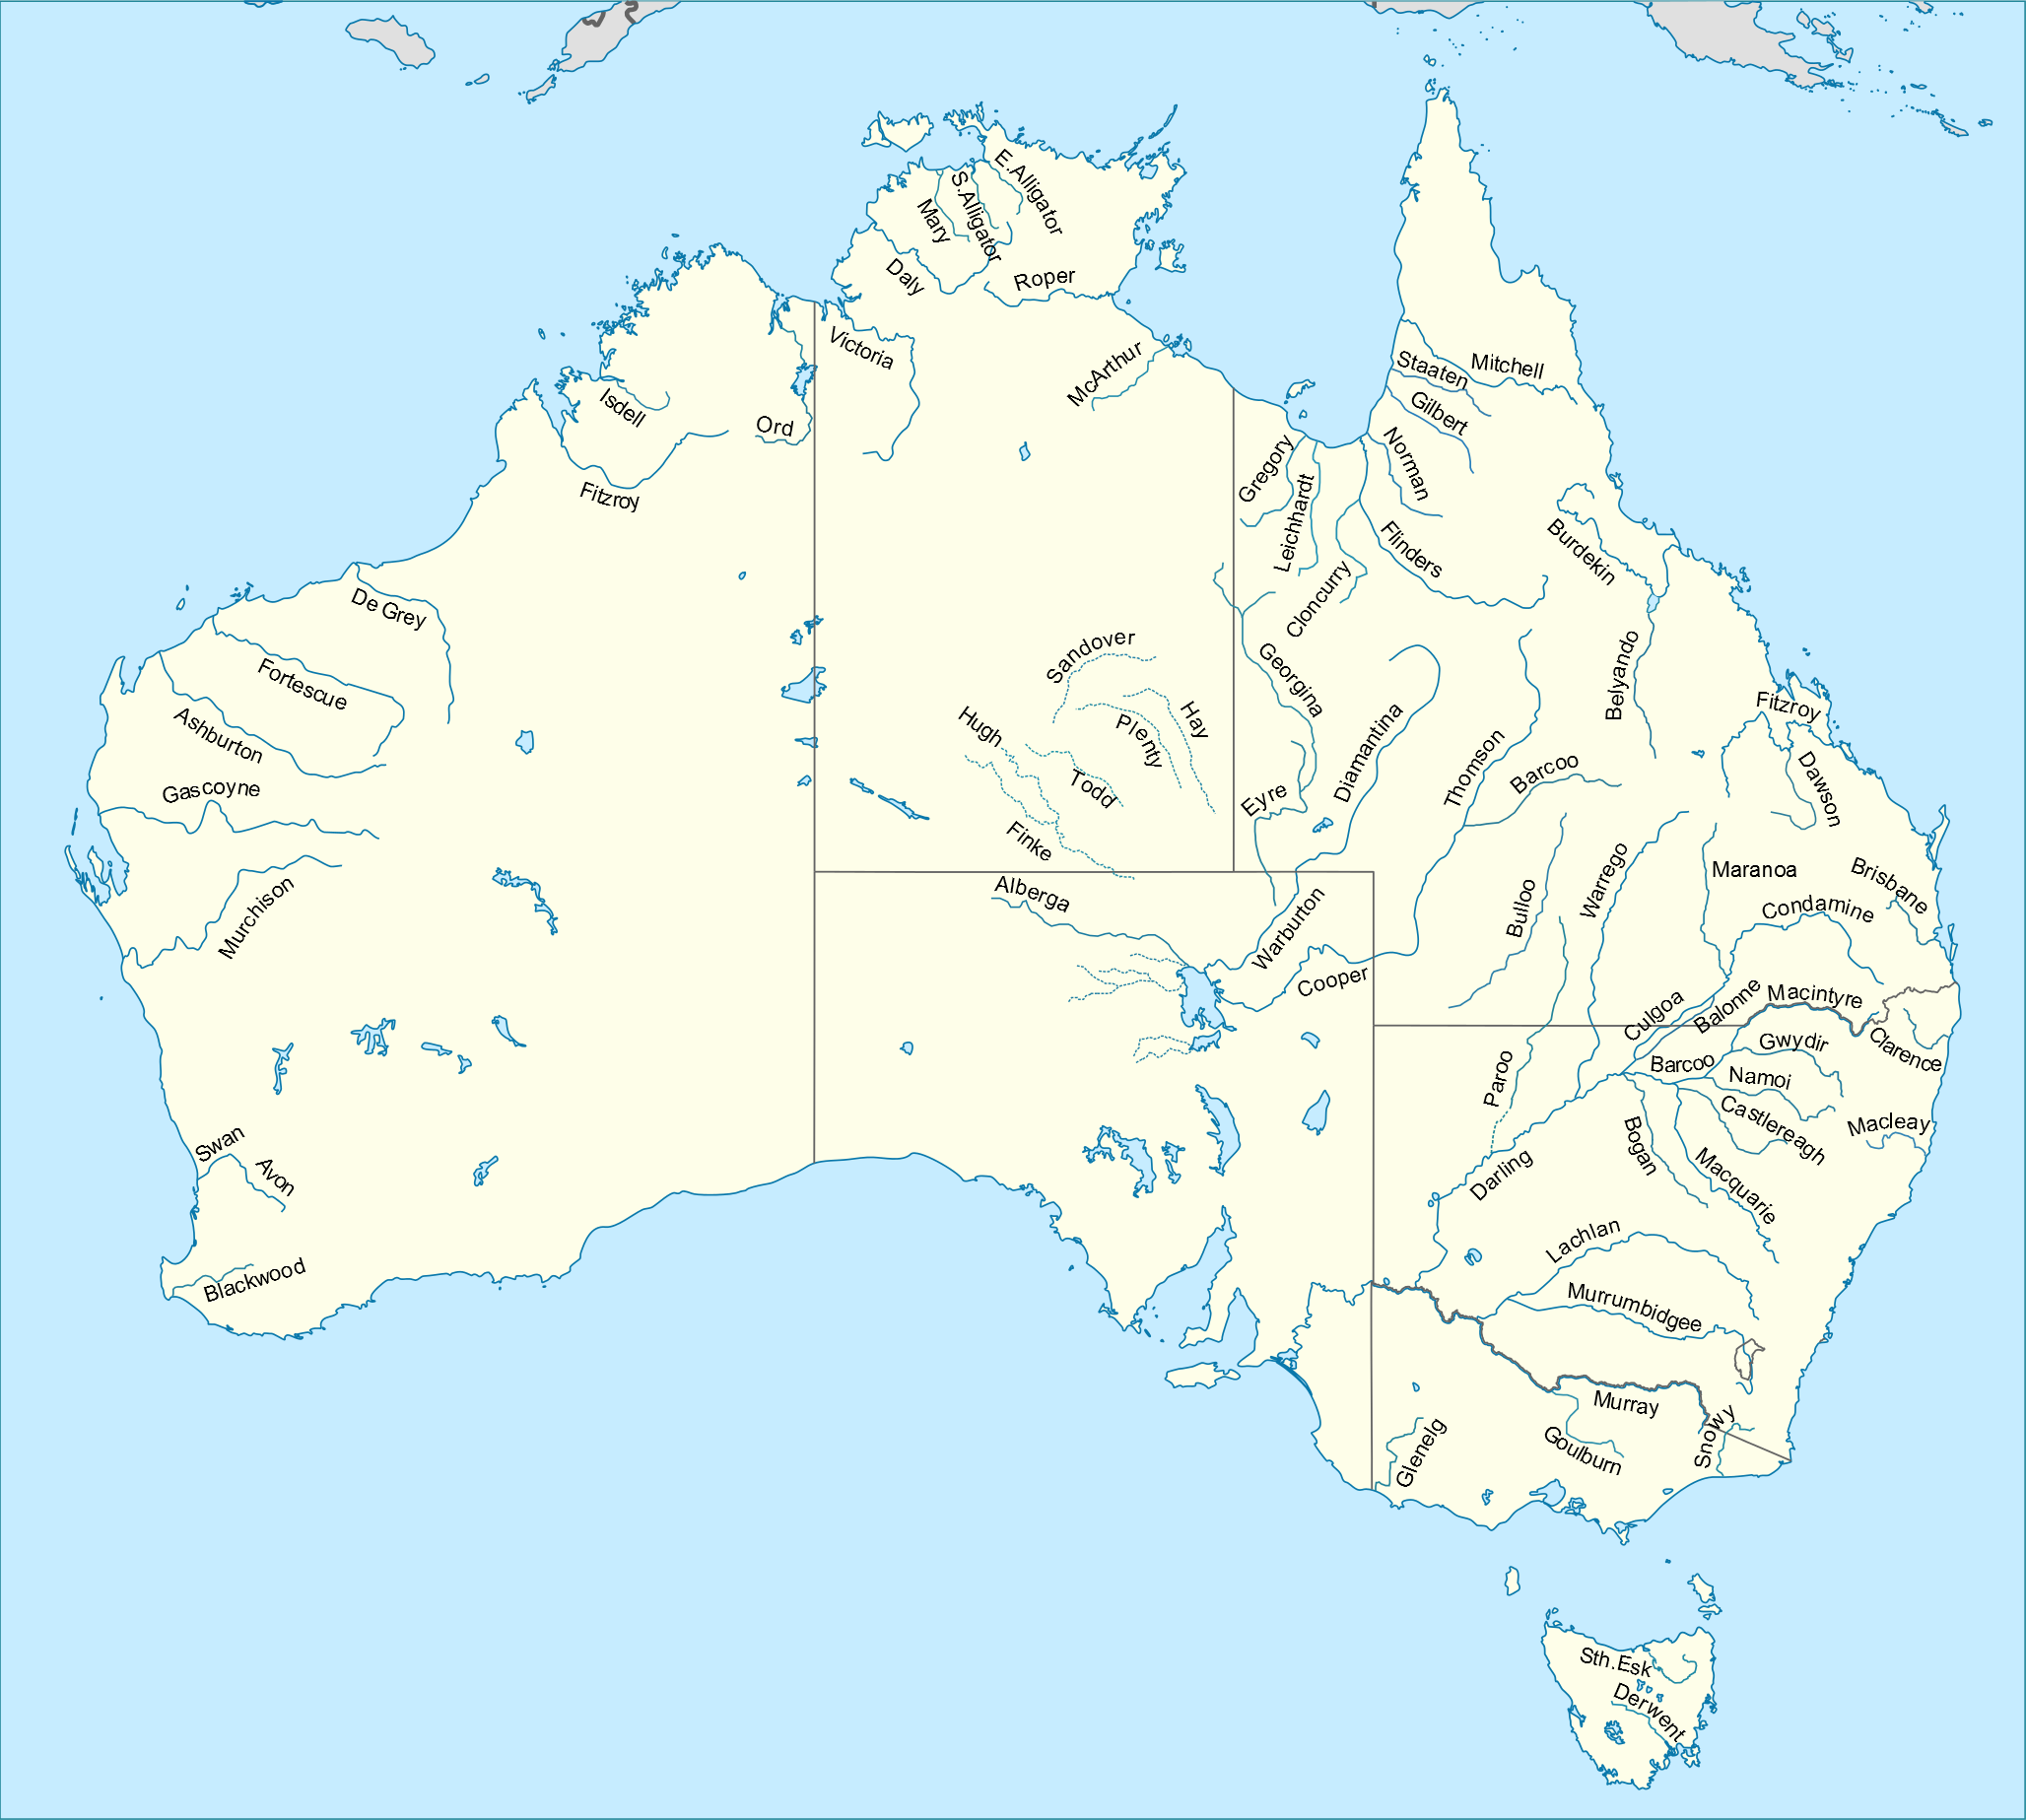 Map Of Australia Labelled.File Australian Rivers With Names Png Wikimedia Commons